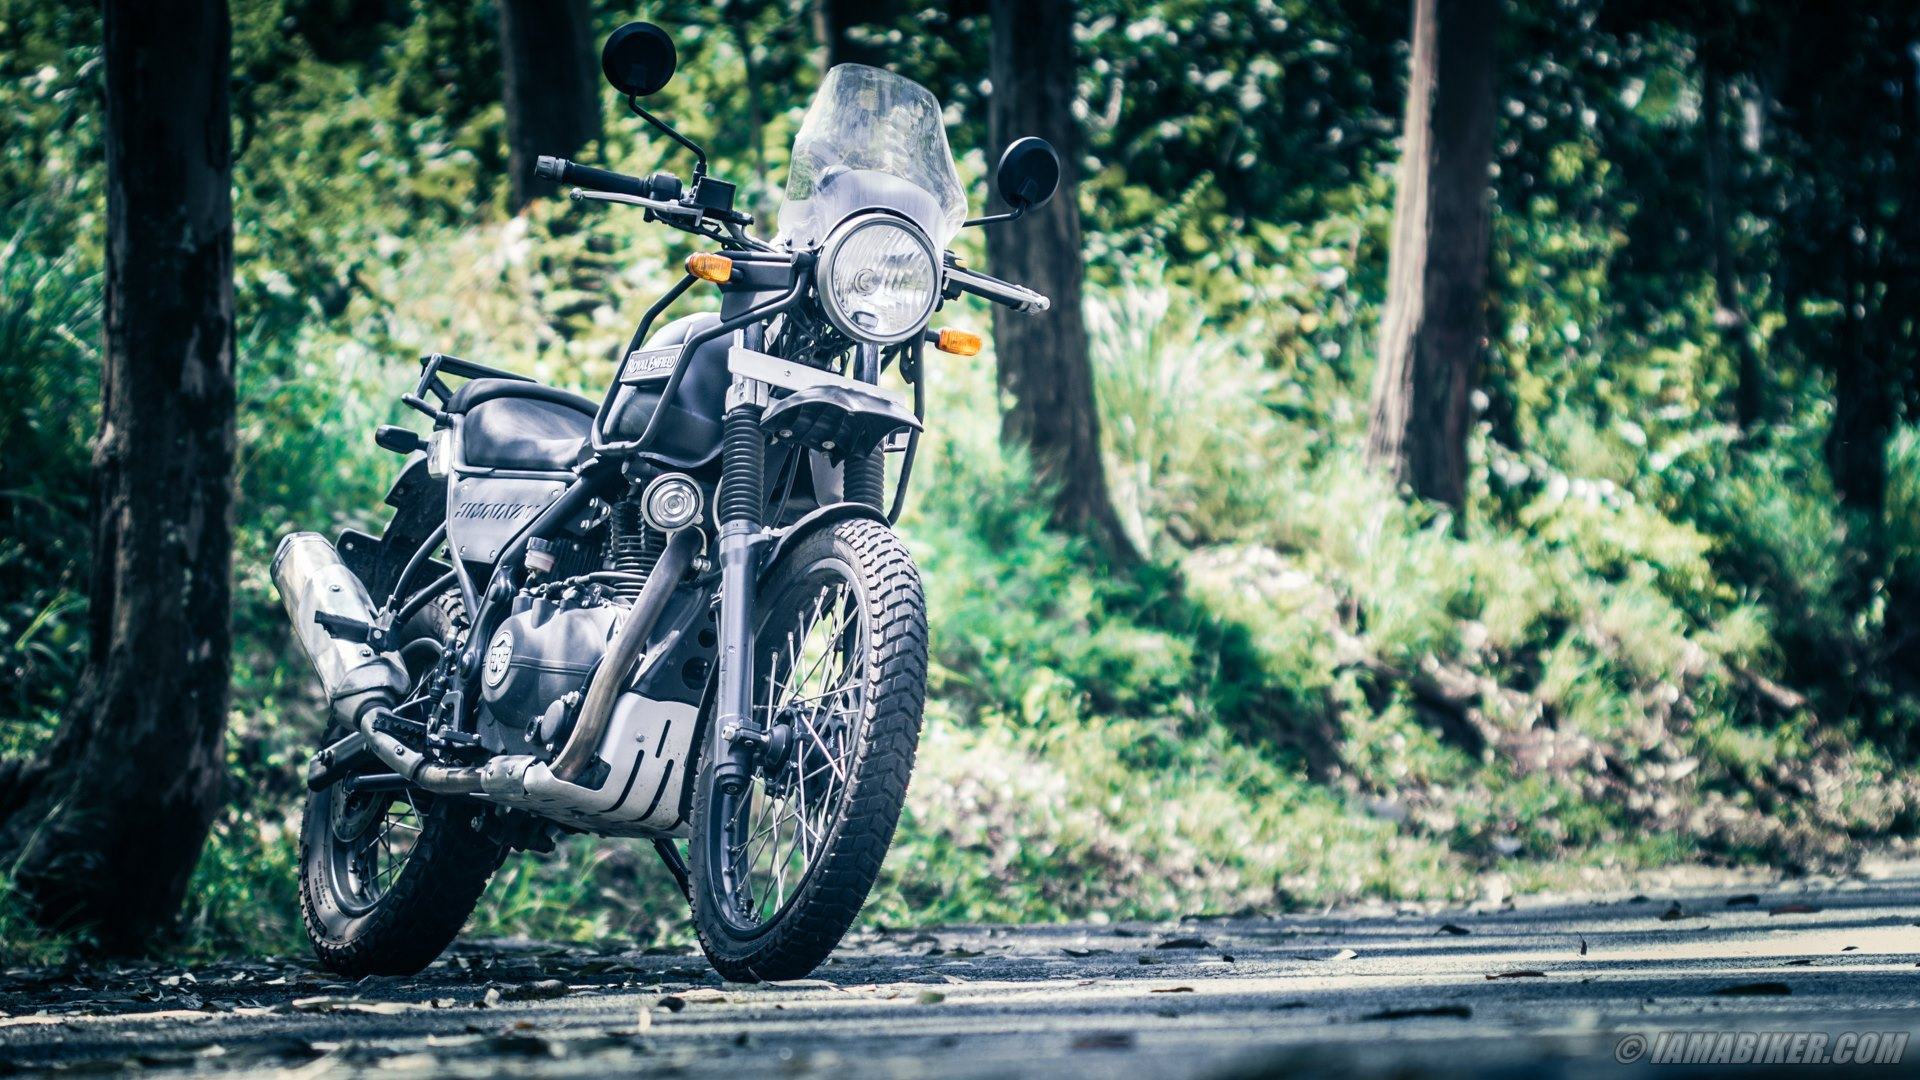 Hd wallpaper royal enfield - Download Royal Enfield Images Wallpapers Gallery